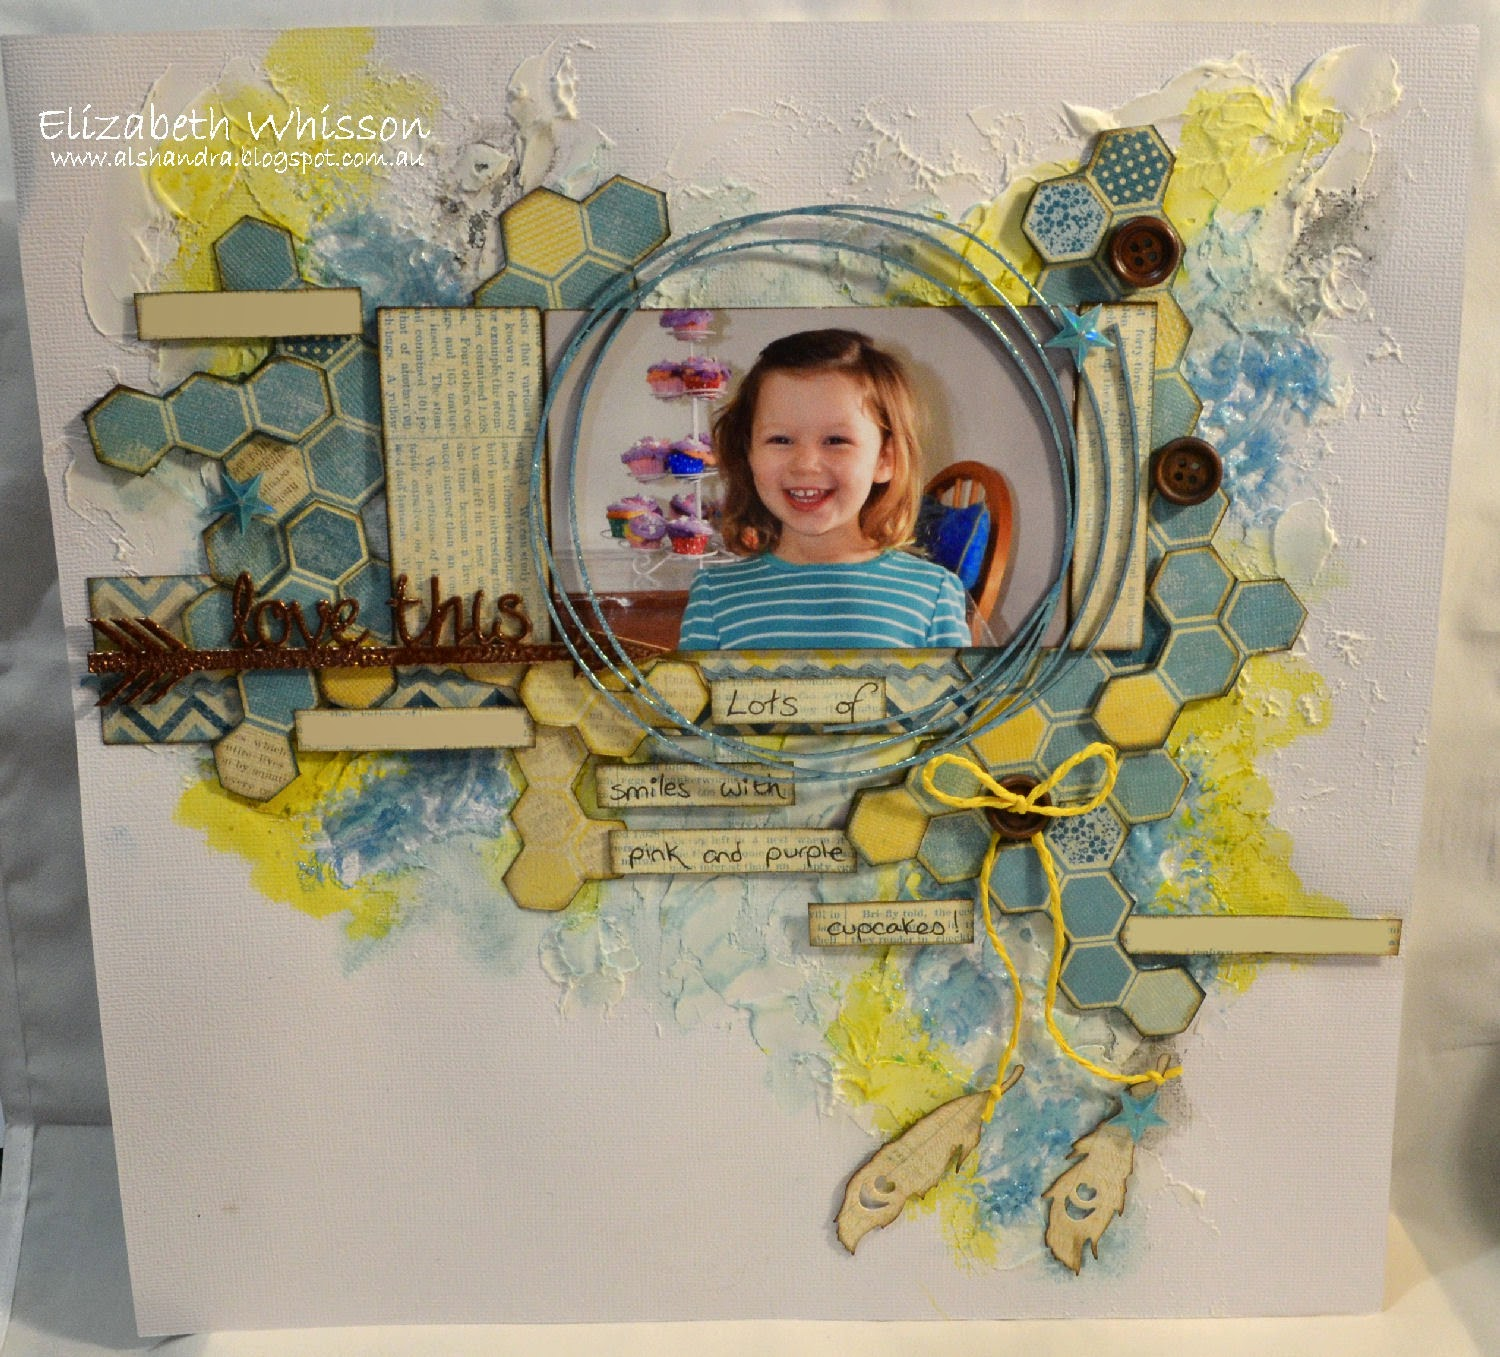 Elizabeth Whisson, scrapbook layout, Beck Beattie, mixed media, gelatos, whipped spackle, Tinby metallic melts, Brisbane Scrapbook and Papercraft Expo class